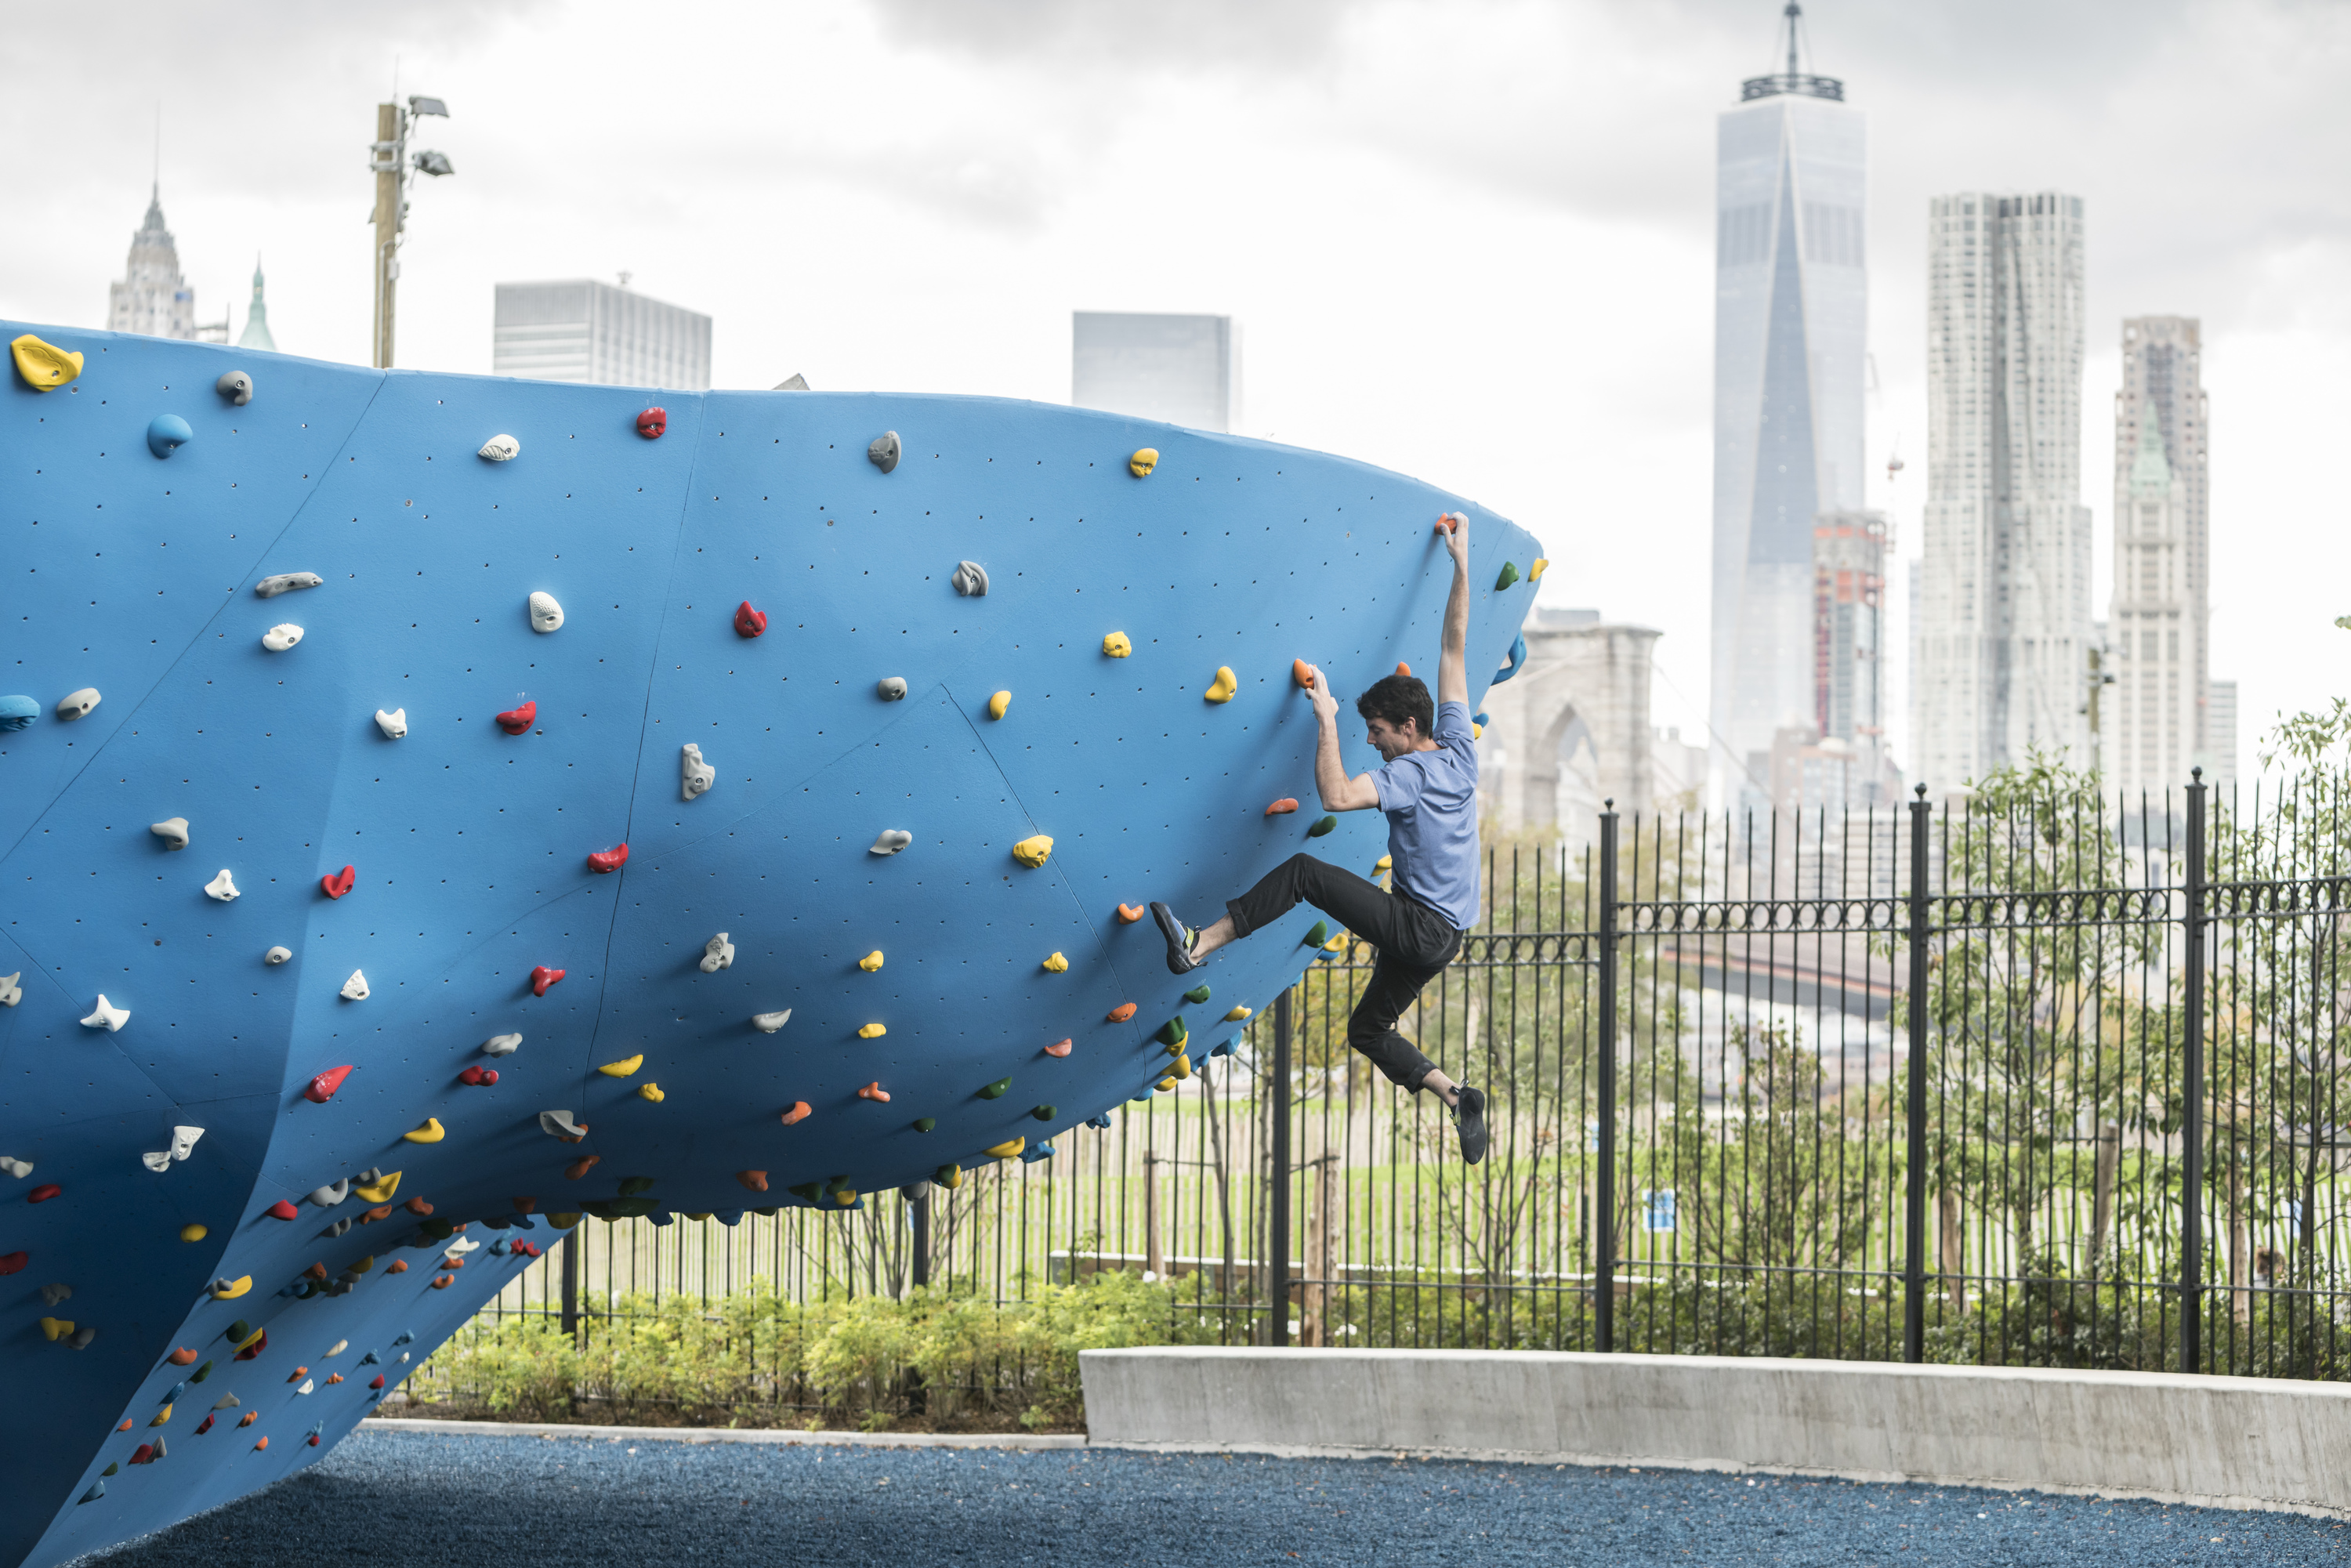 Best rock climbing gyms for kids in NYC